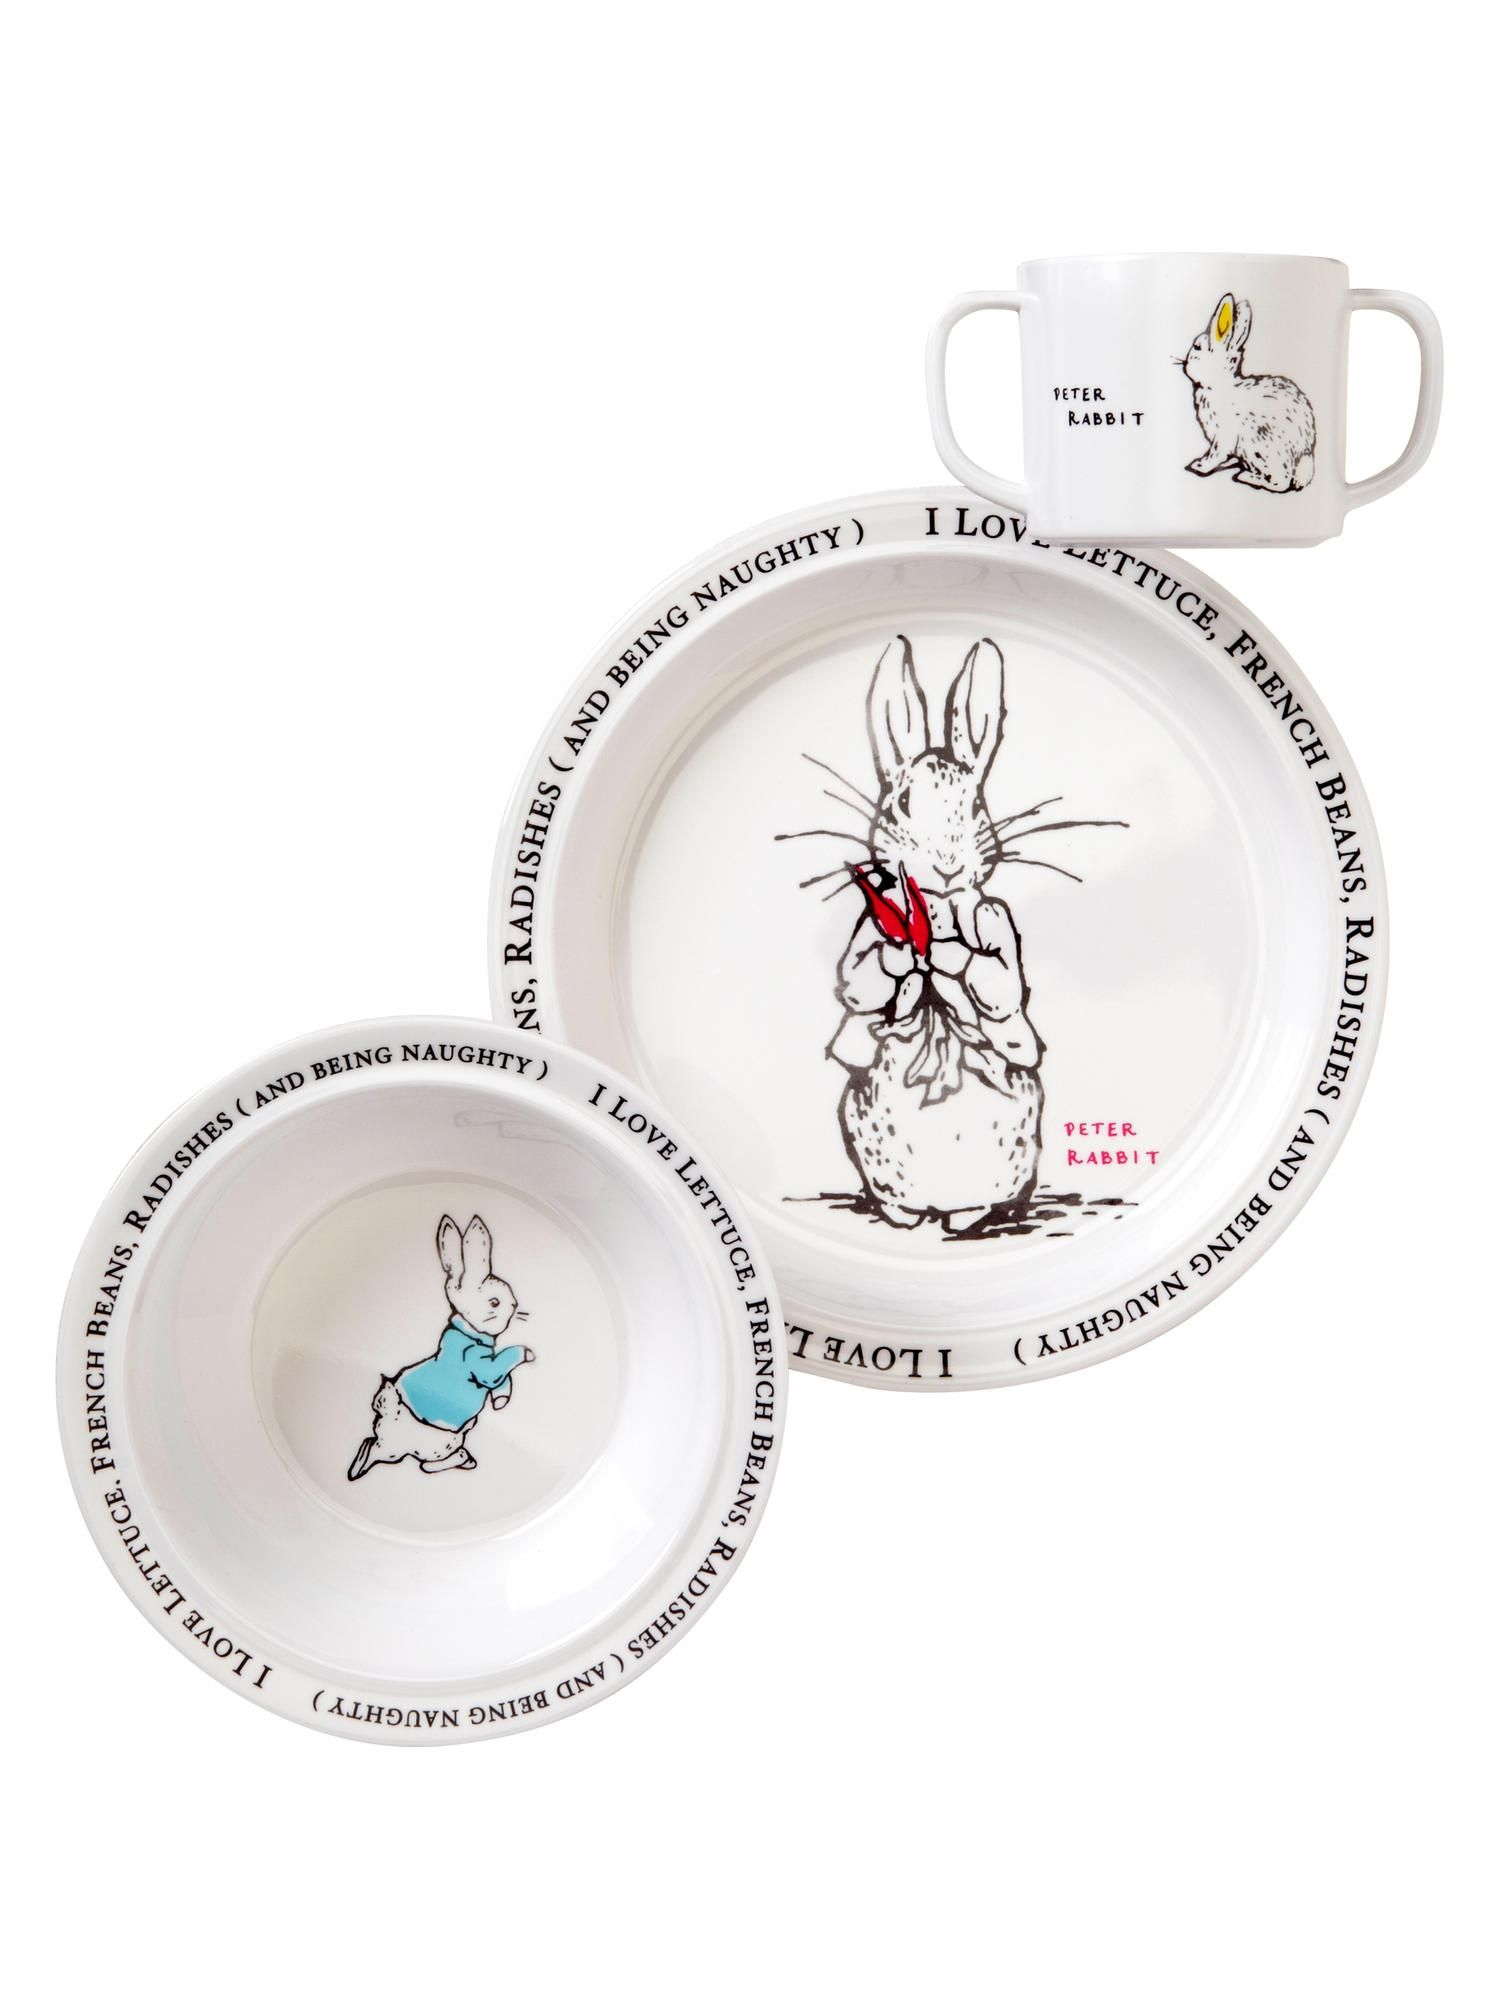 Peter Rabbit melamine dish set from Baby Gap. This was originally $30 or something and  sc 1 st  Pinterest & Peter Rabbit melamine dish set from Baby Gap. This was originally ...